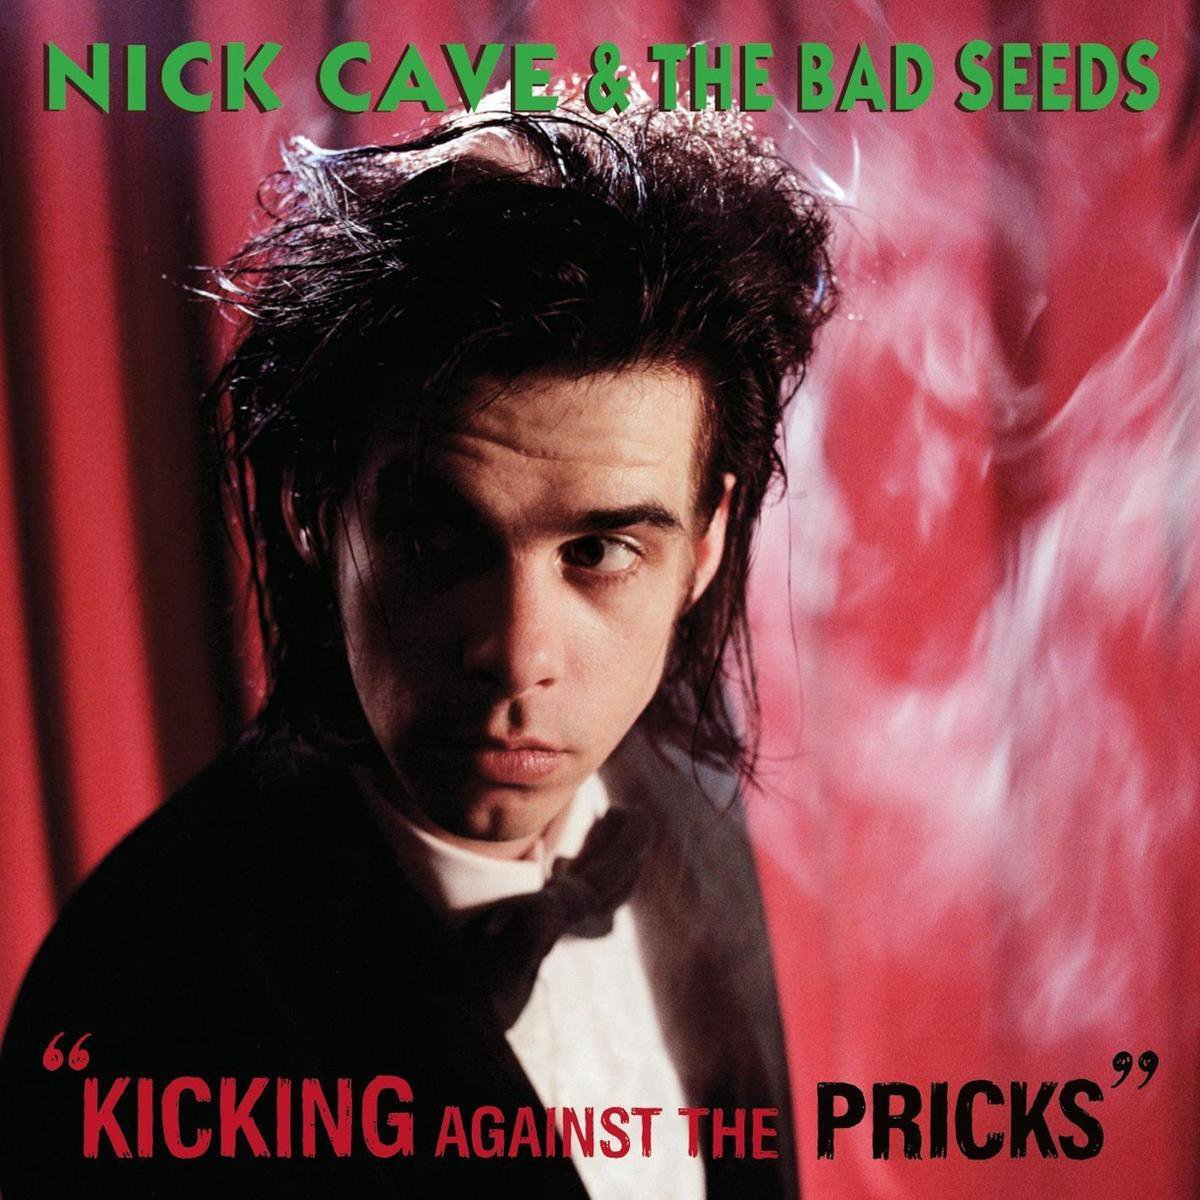 Nick Cave & The Bad Seeds - Kicking Against The Pricks (2009 Di - Nick Cave & The Bad Seeds